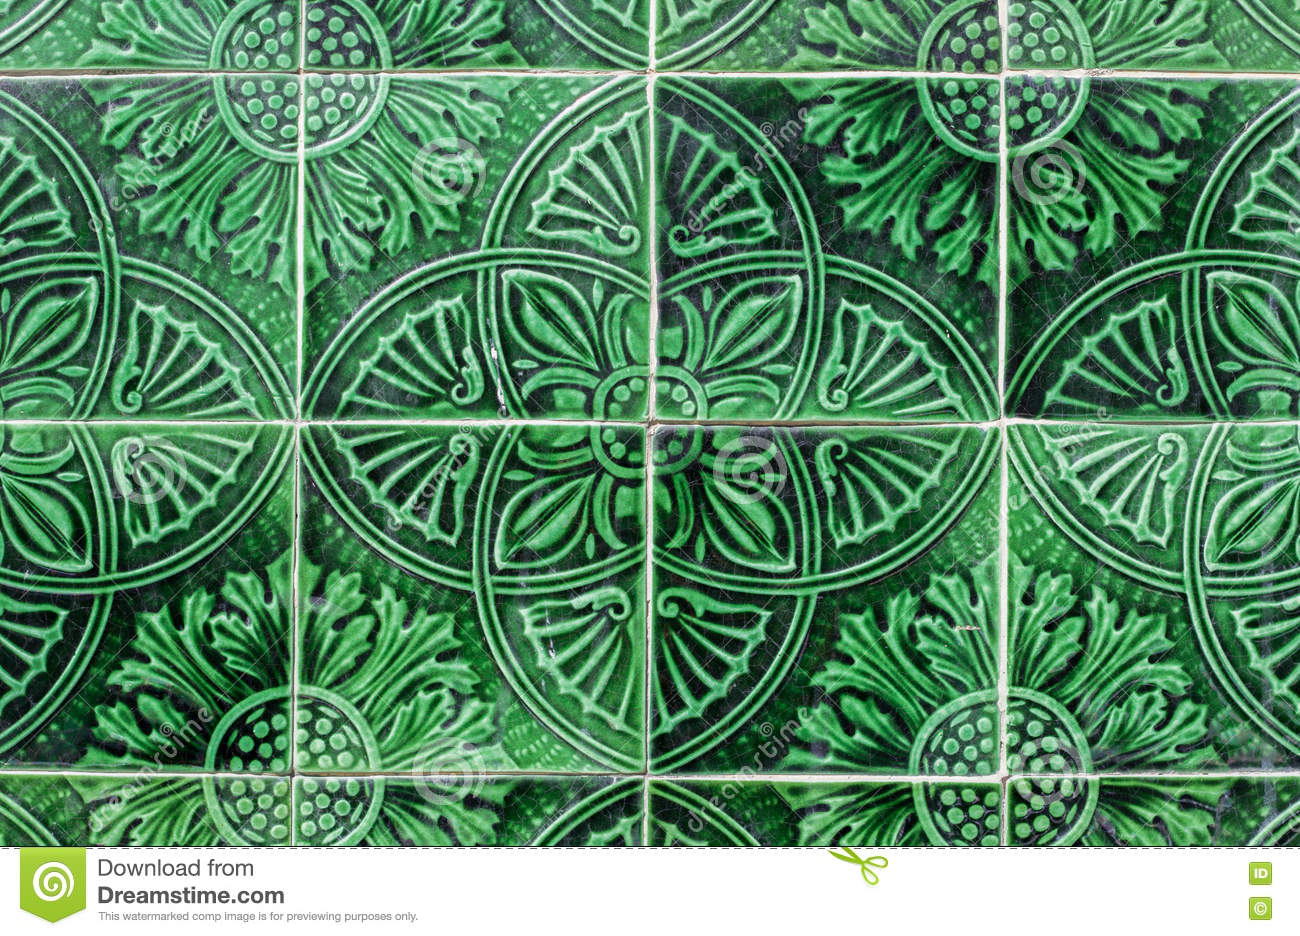 Pretty 16X32 Ceiling Tiles Small 18 Inch Floor Tile Round 18 X 18 Ceramic Tile 20 X 20 Floor Tile Patterns Youthful 24 X 24 Ceiling Tiles Brown3 X 12 Subway Tile Green Arabic Ceramic Tiles Closeup Stock Photo   Image Of Mosaic ..